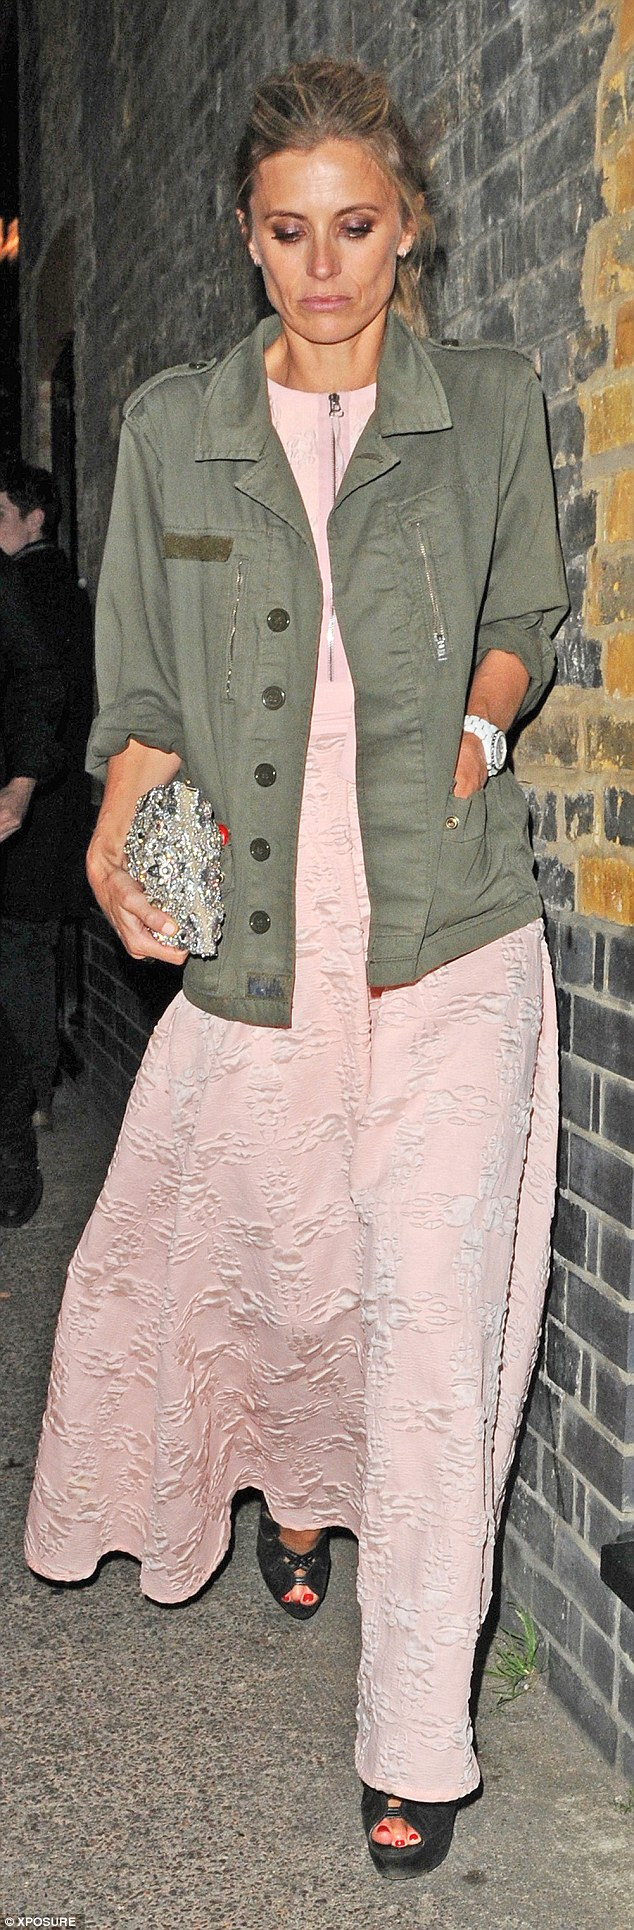 All dressed up: Laura Bailey threw a casual green jacket over her dusky pink dress